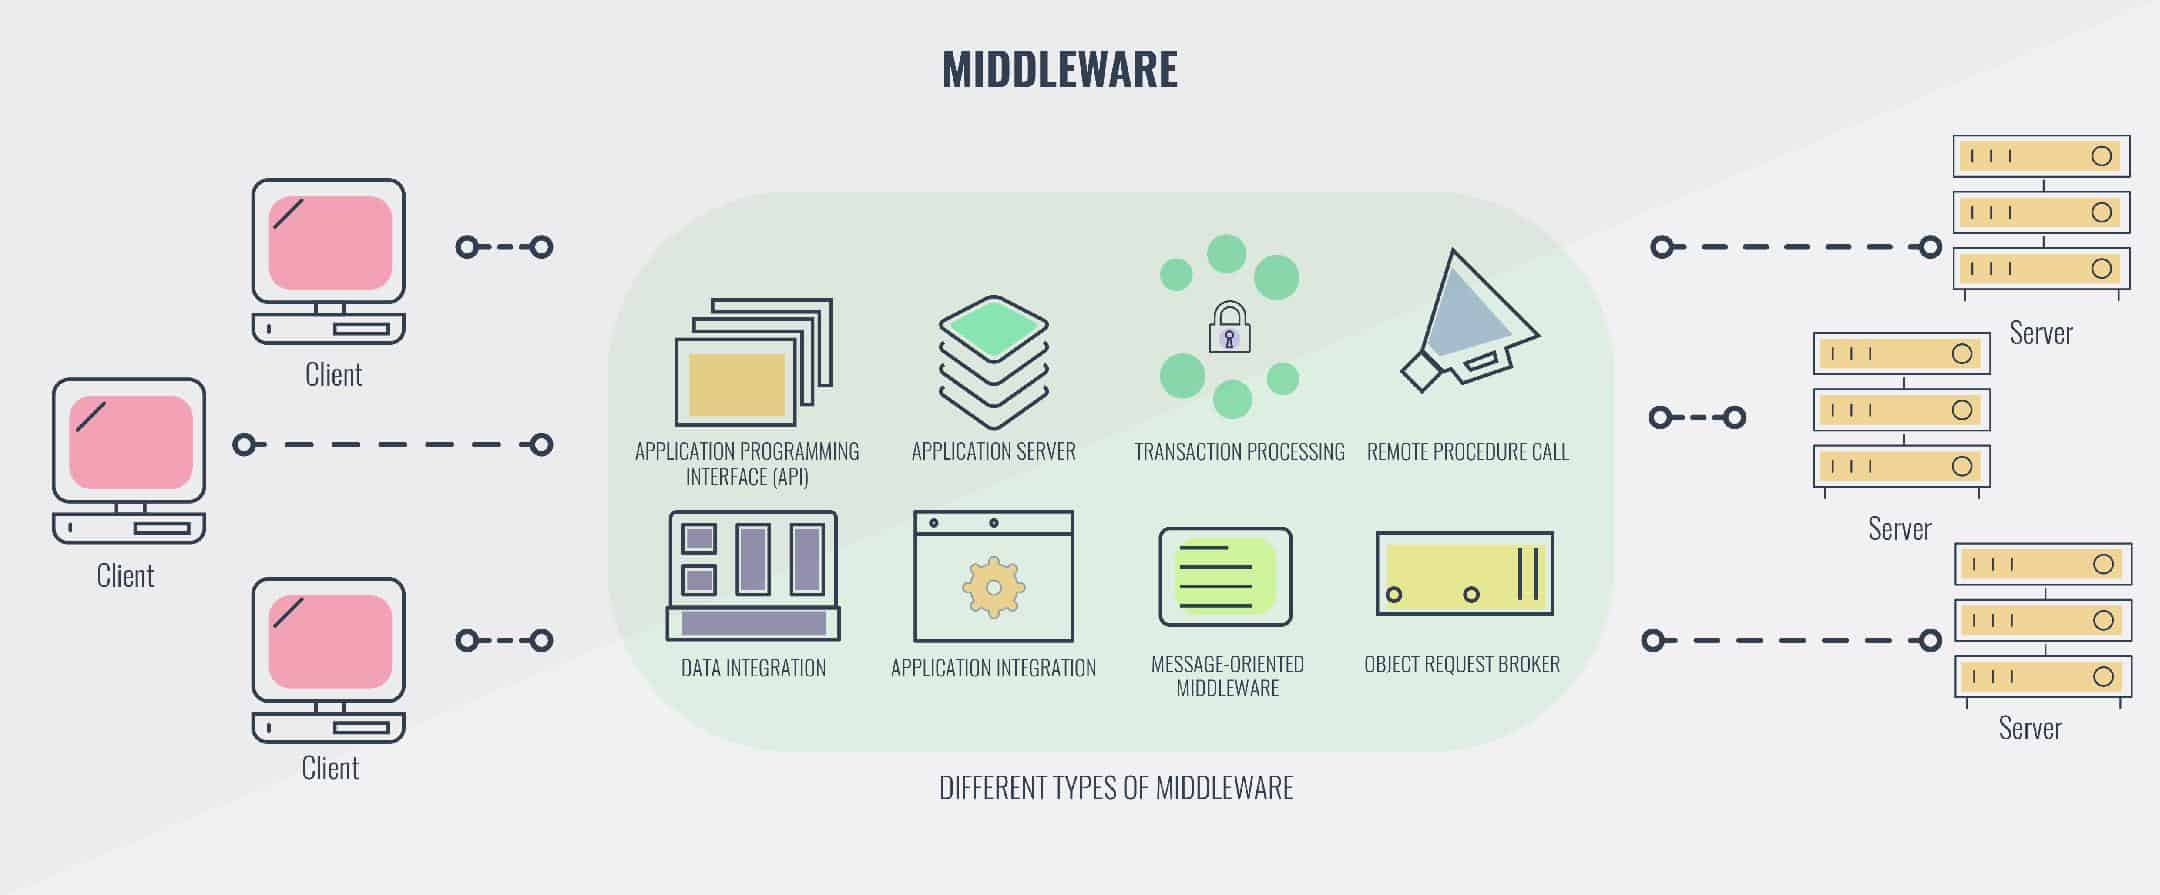 Different Types of Middleware